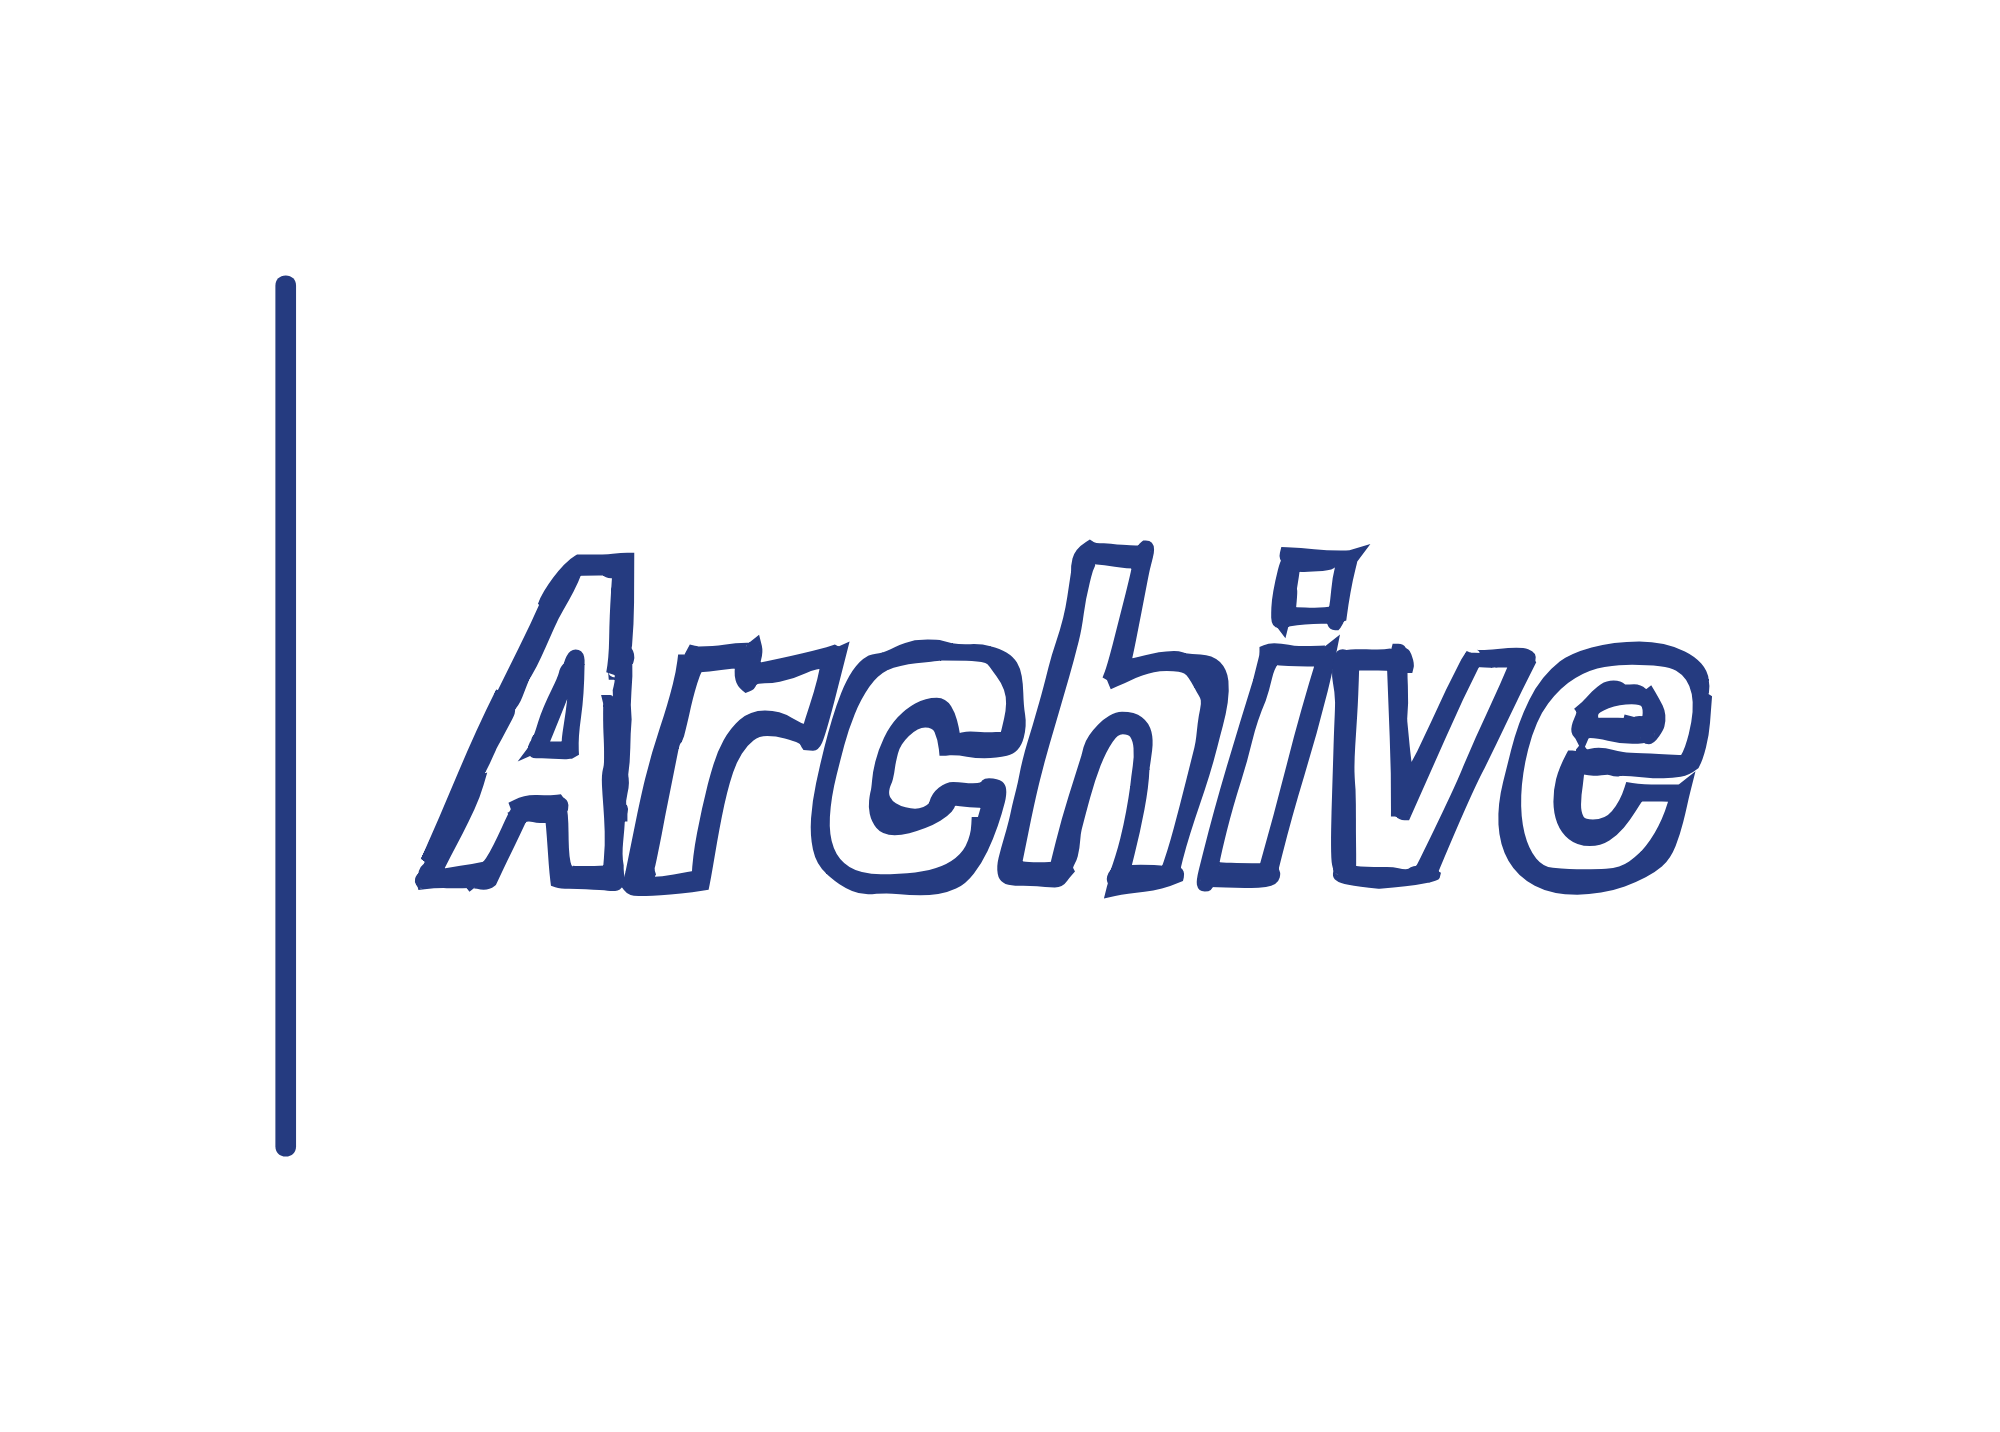 Archive-logo.png